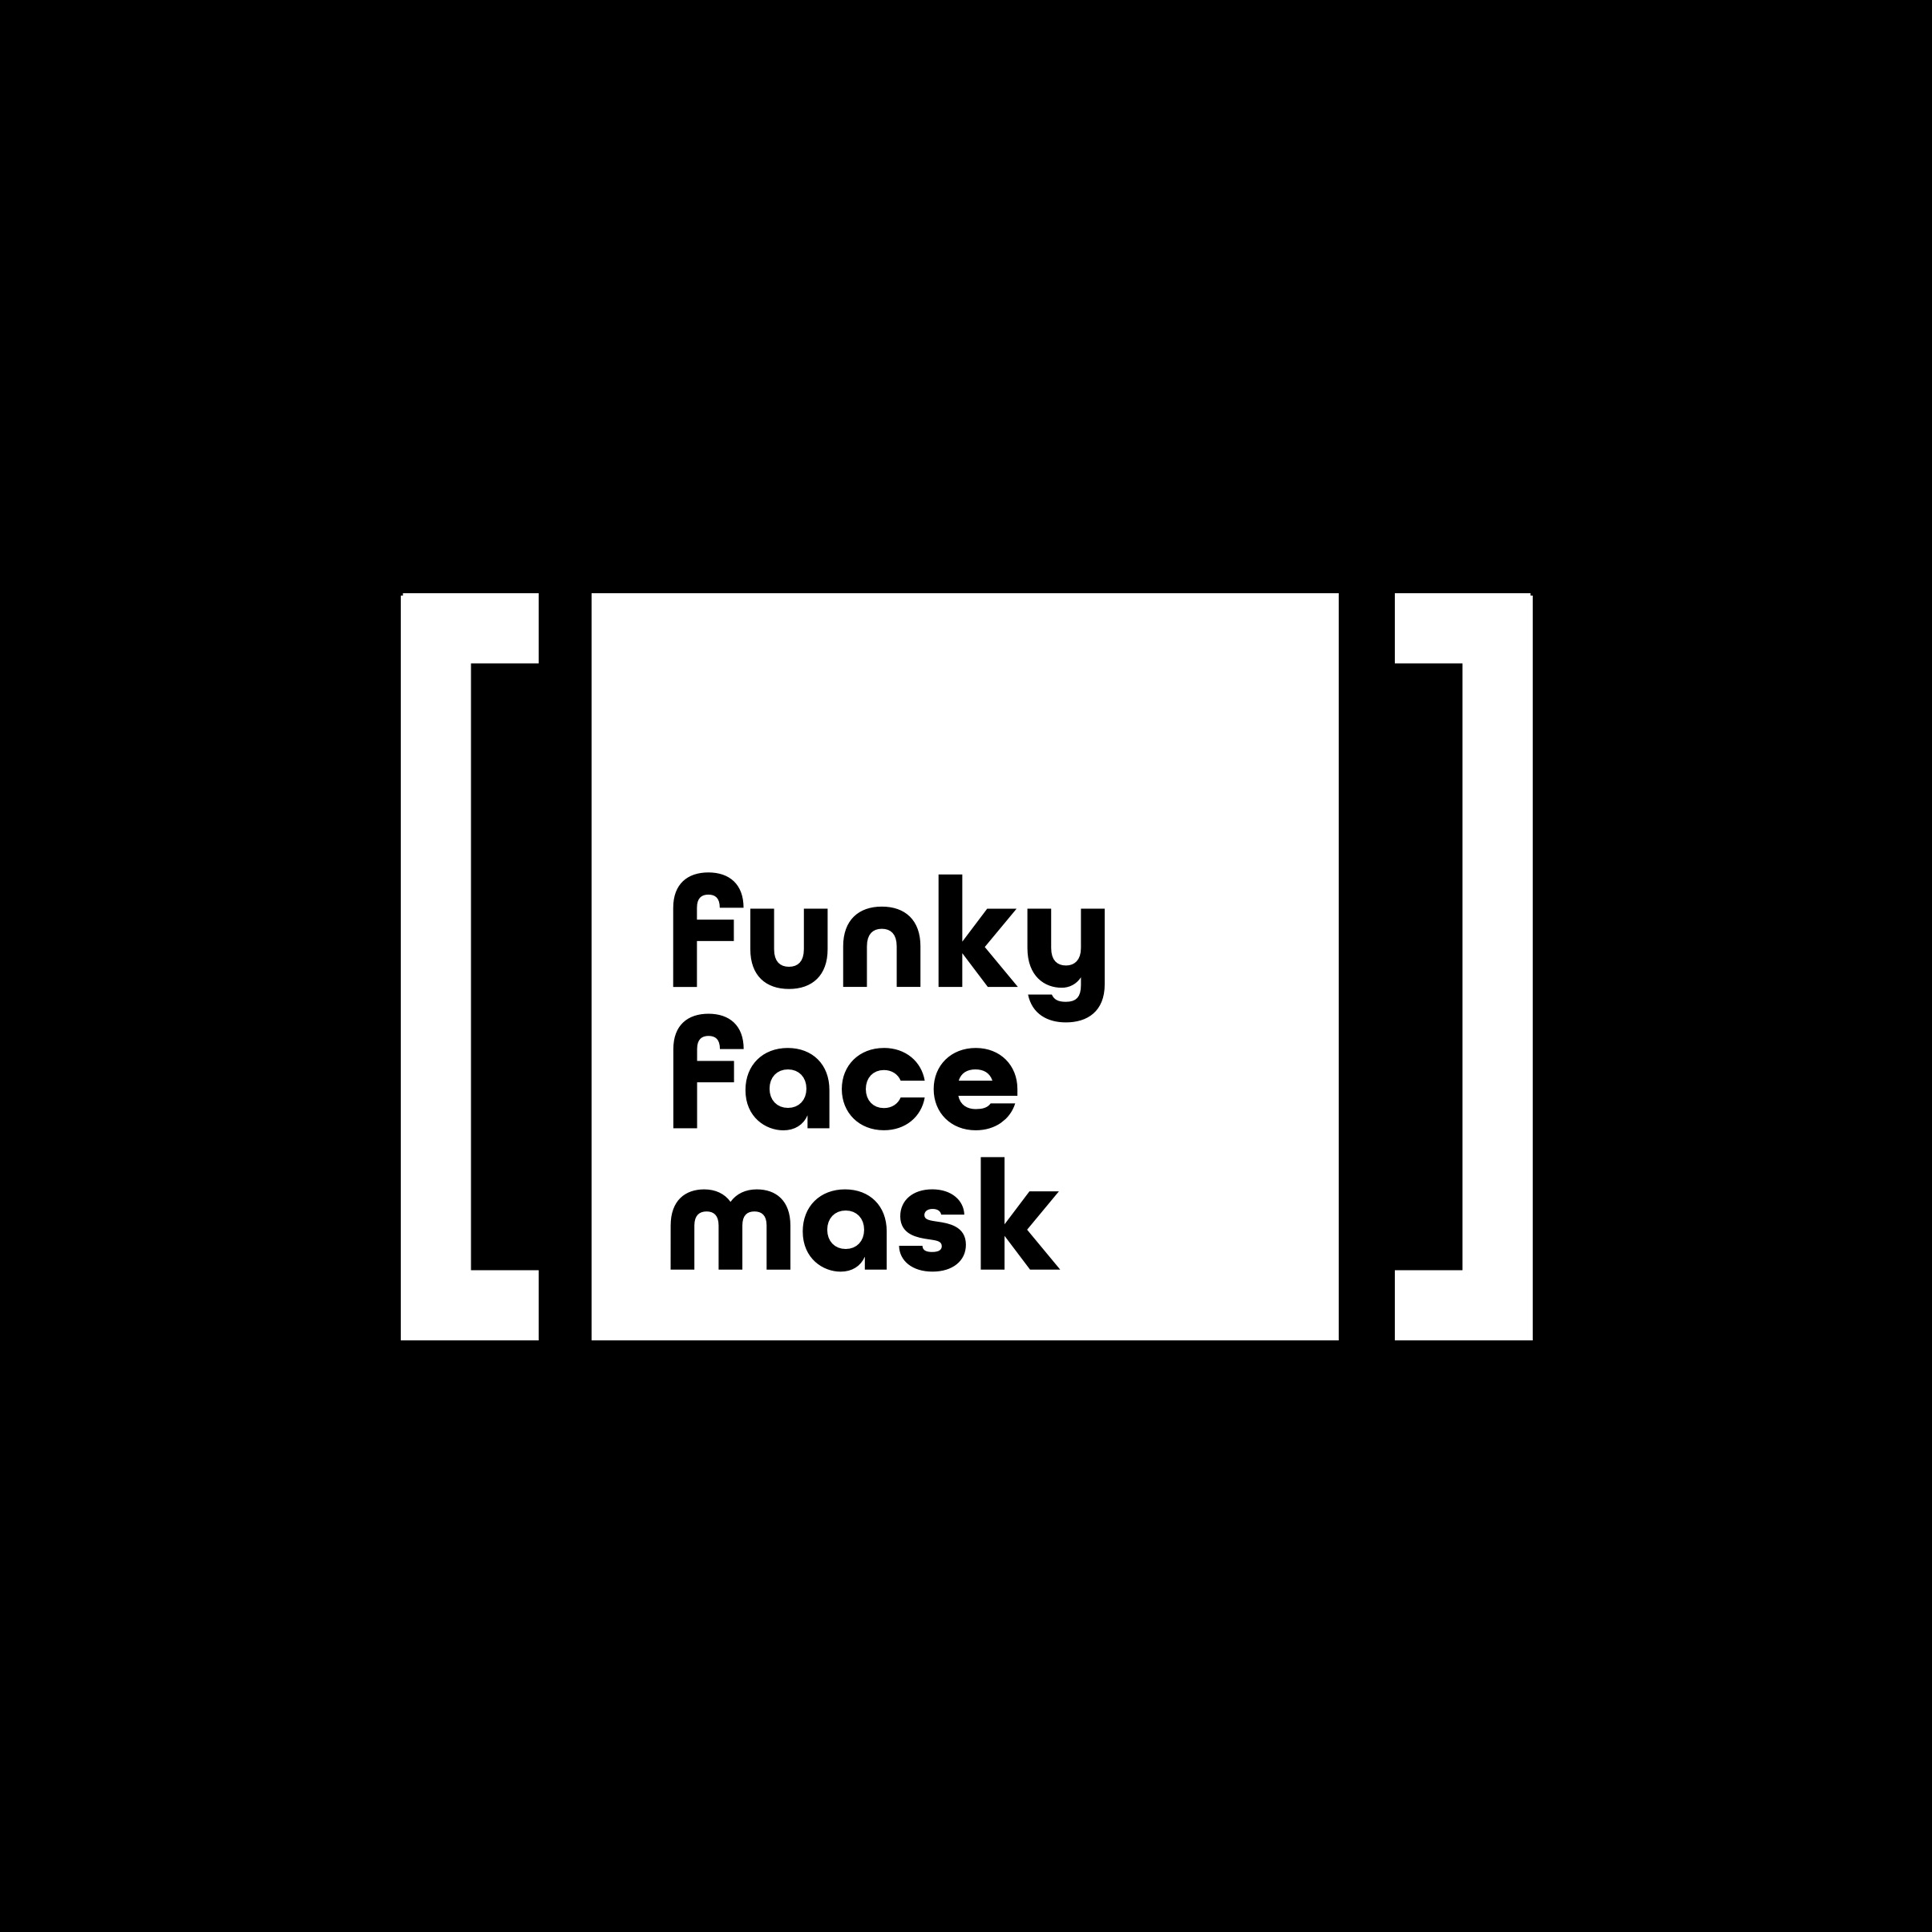 Funky Face Mask Logo by Casper Creative